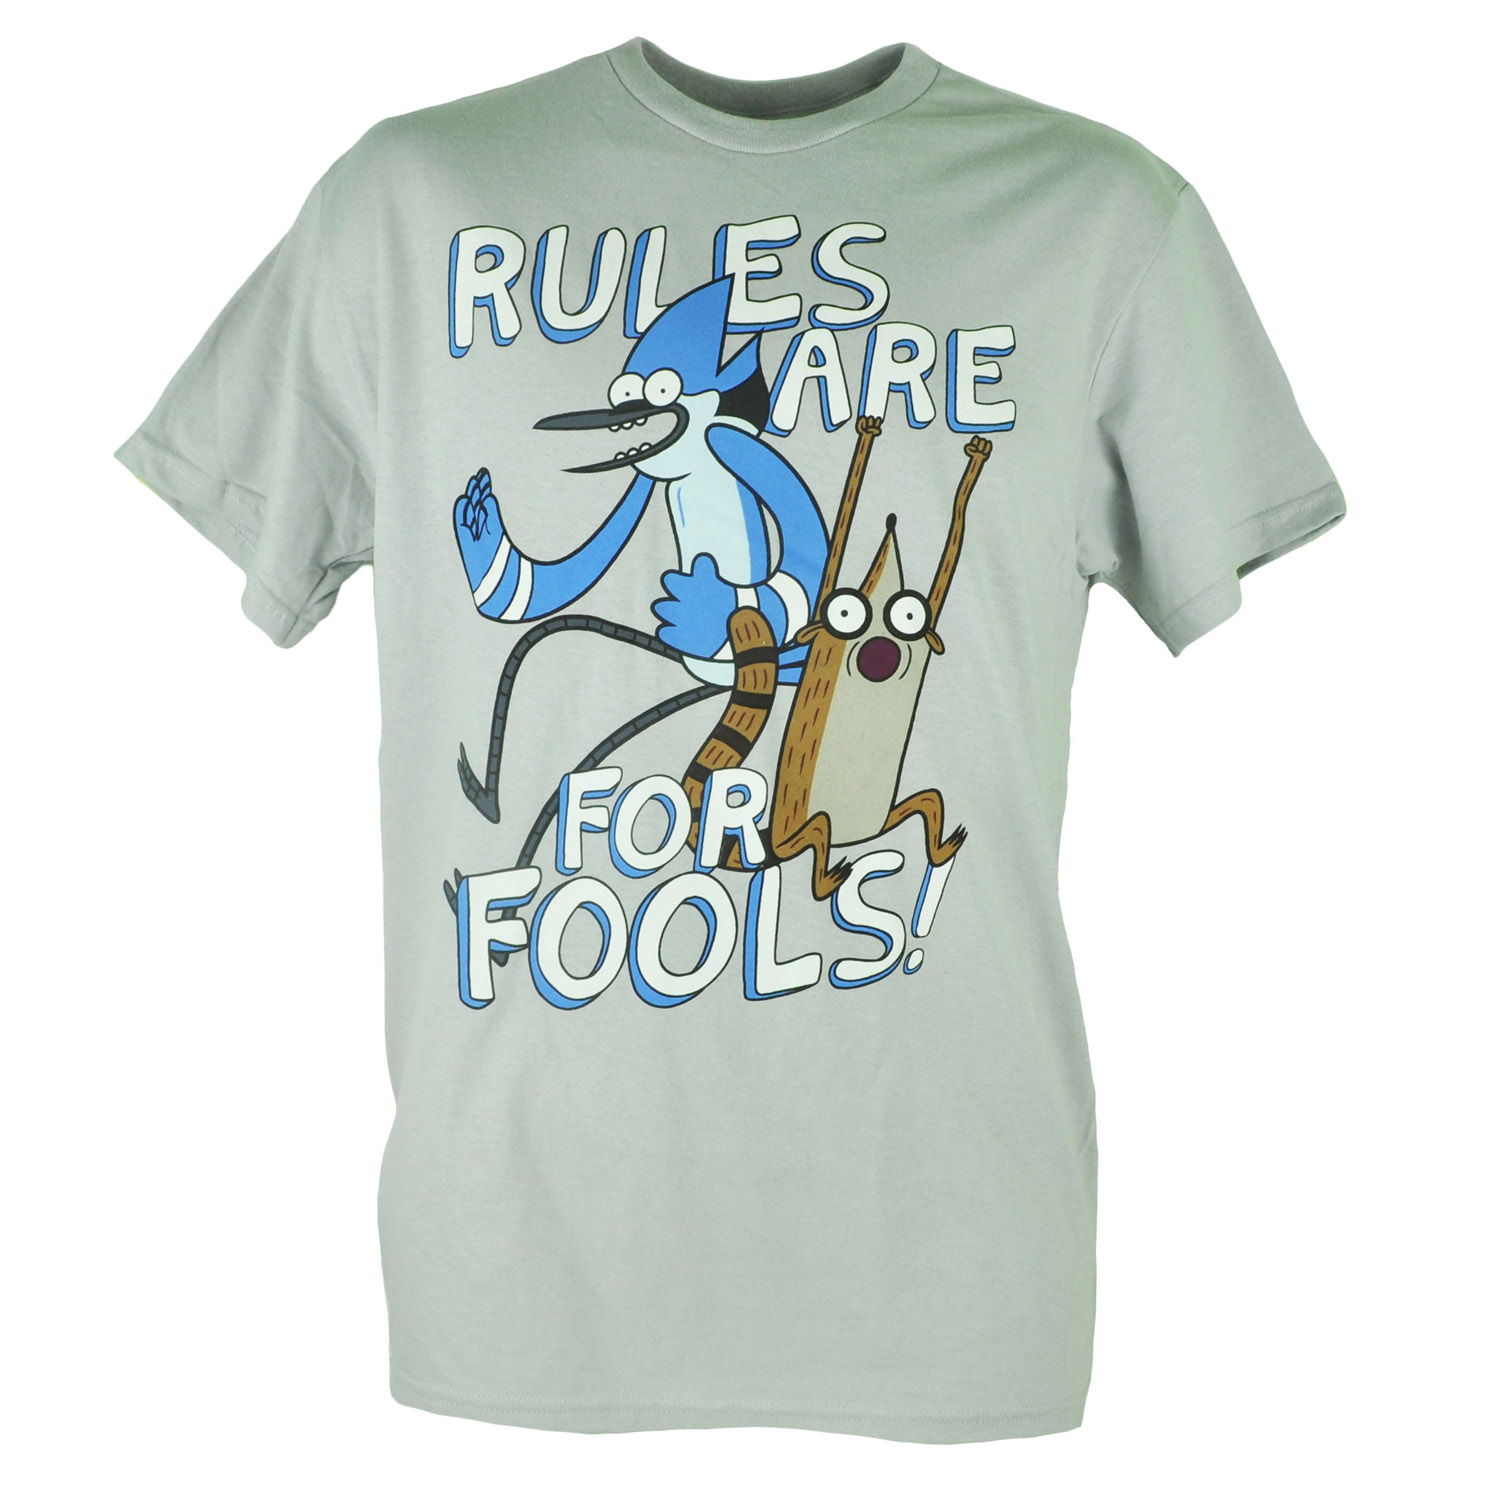 Regular Show Rules Are For Fools Graphic Grey Tshirt Tee XLarge